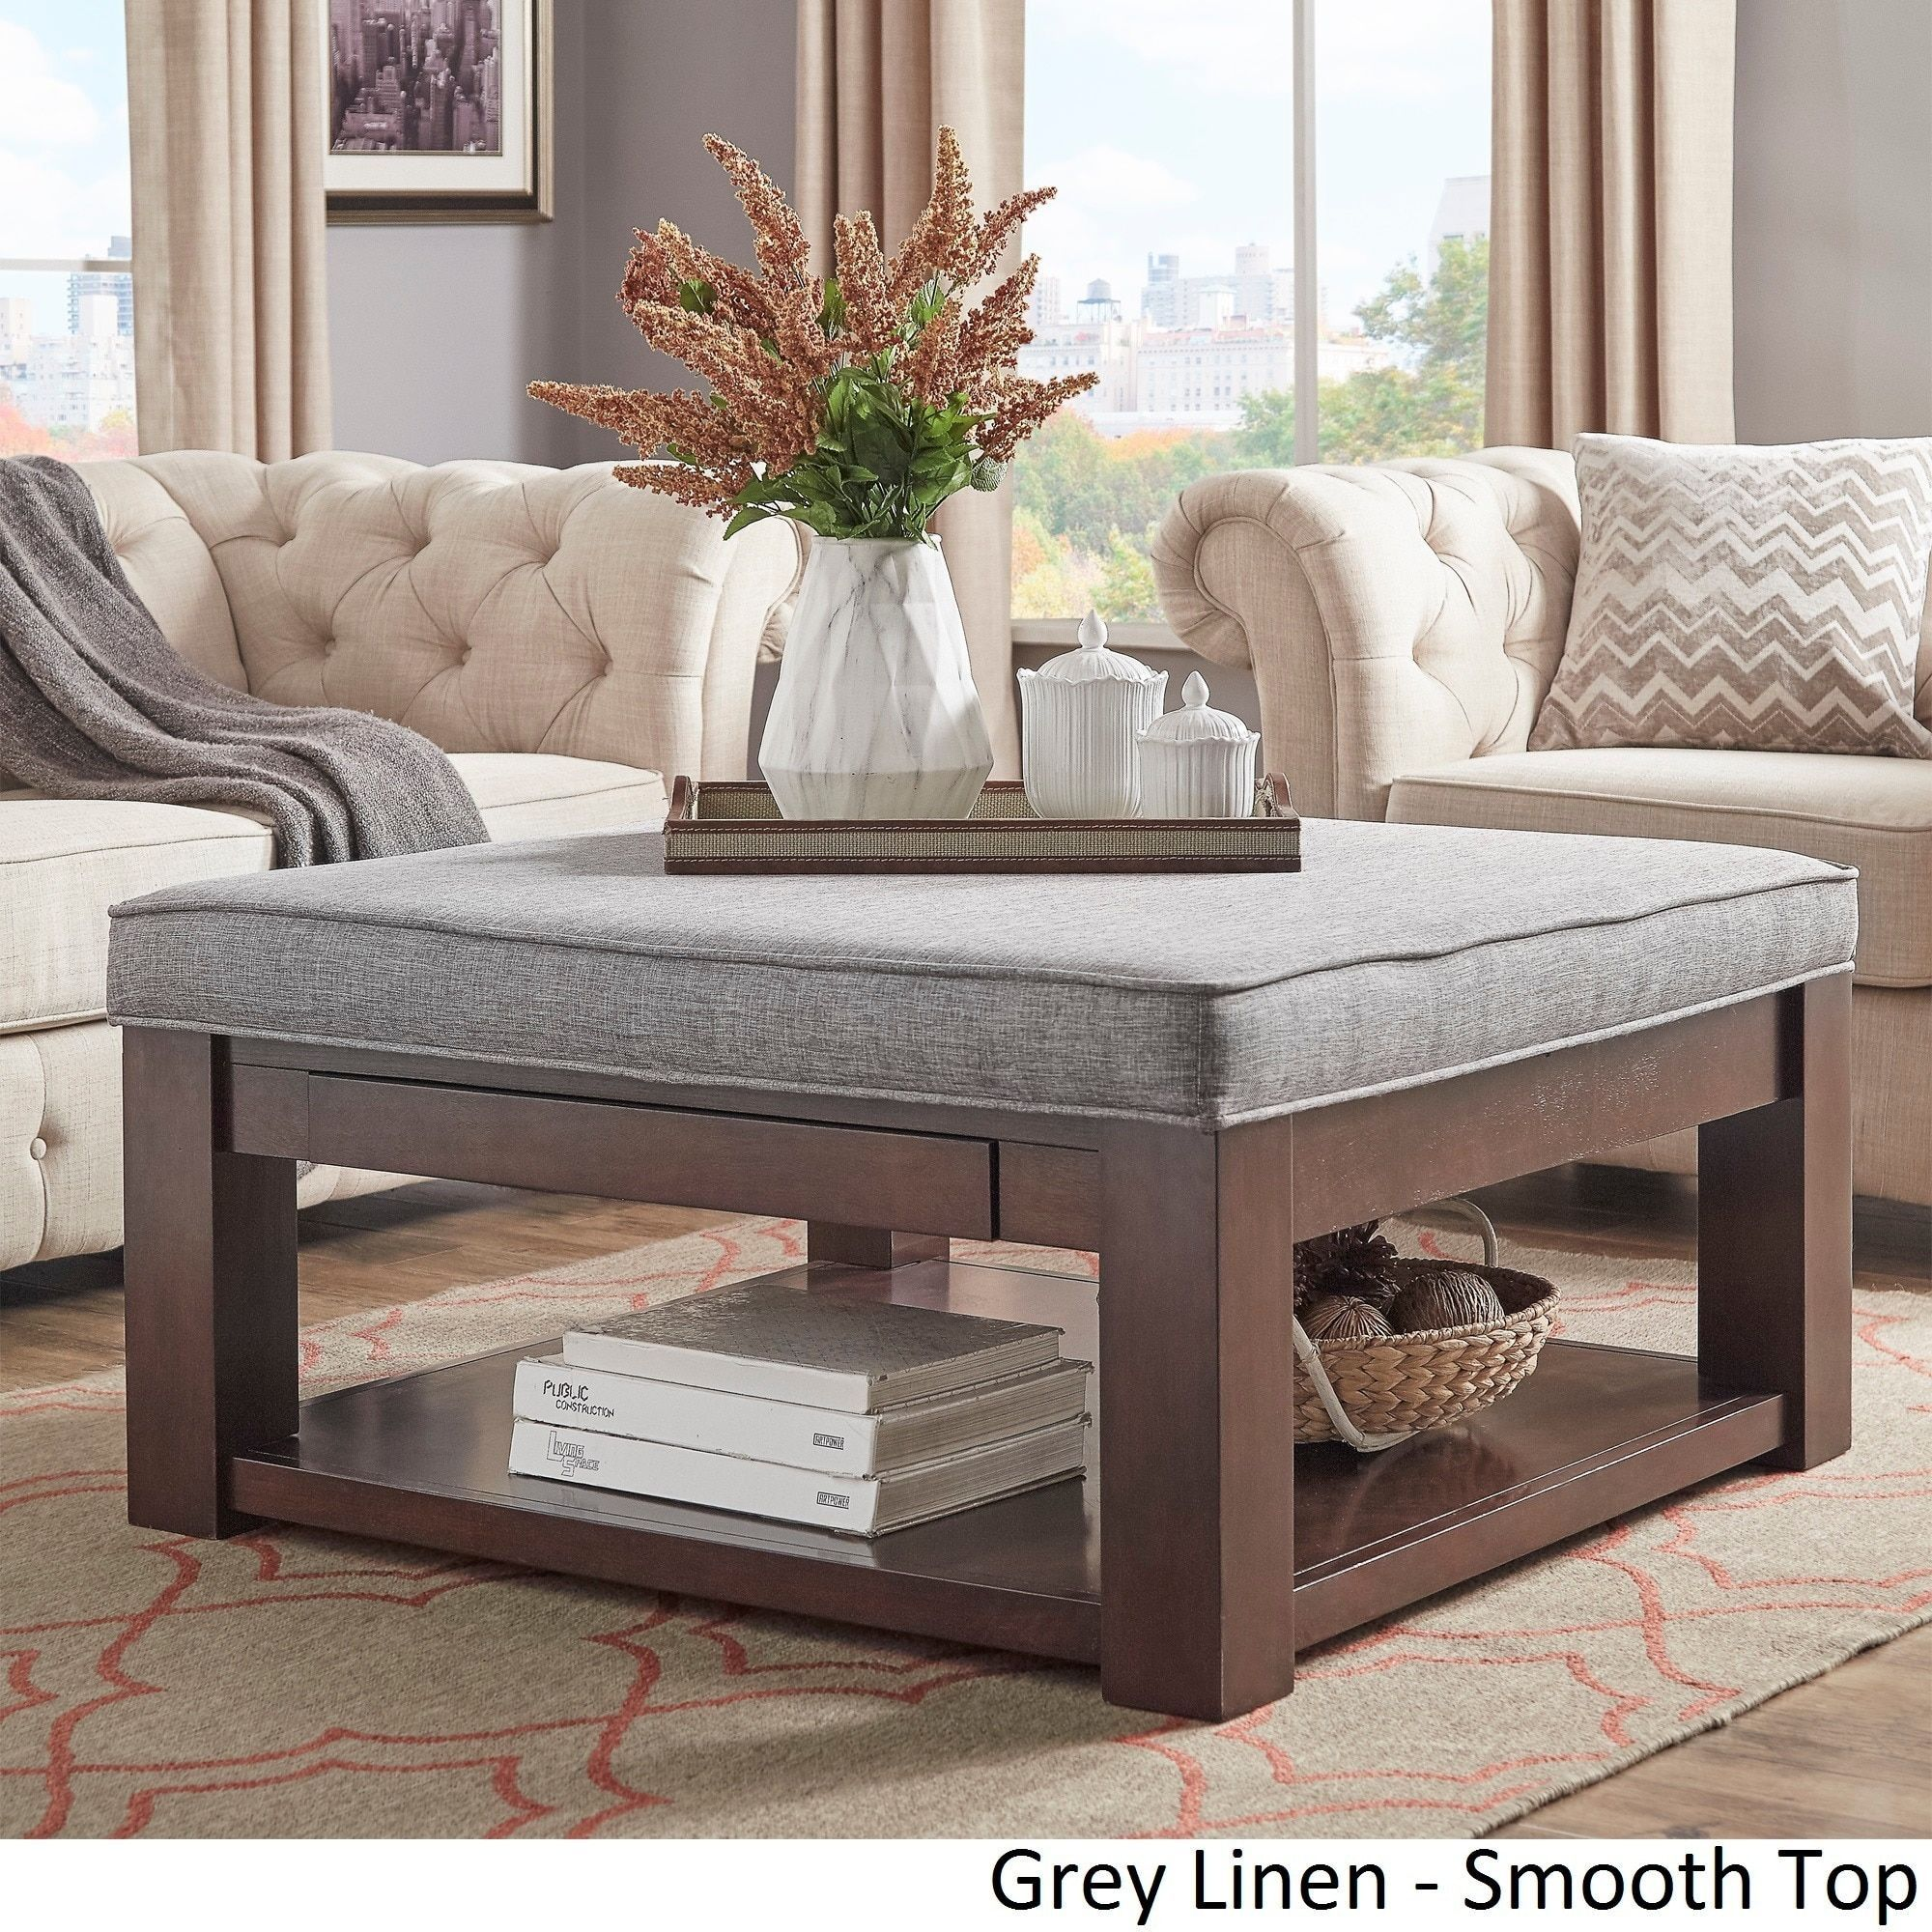 Lennon Espresso Square Storage Ottoman Coffee Table By INSPIRE Q Classic  ([Beige Linen]  Smooth Top), Size 38 X 38 X 19